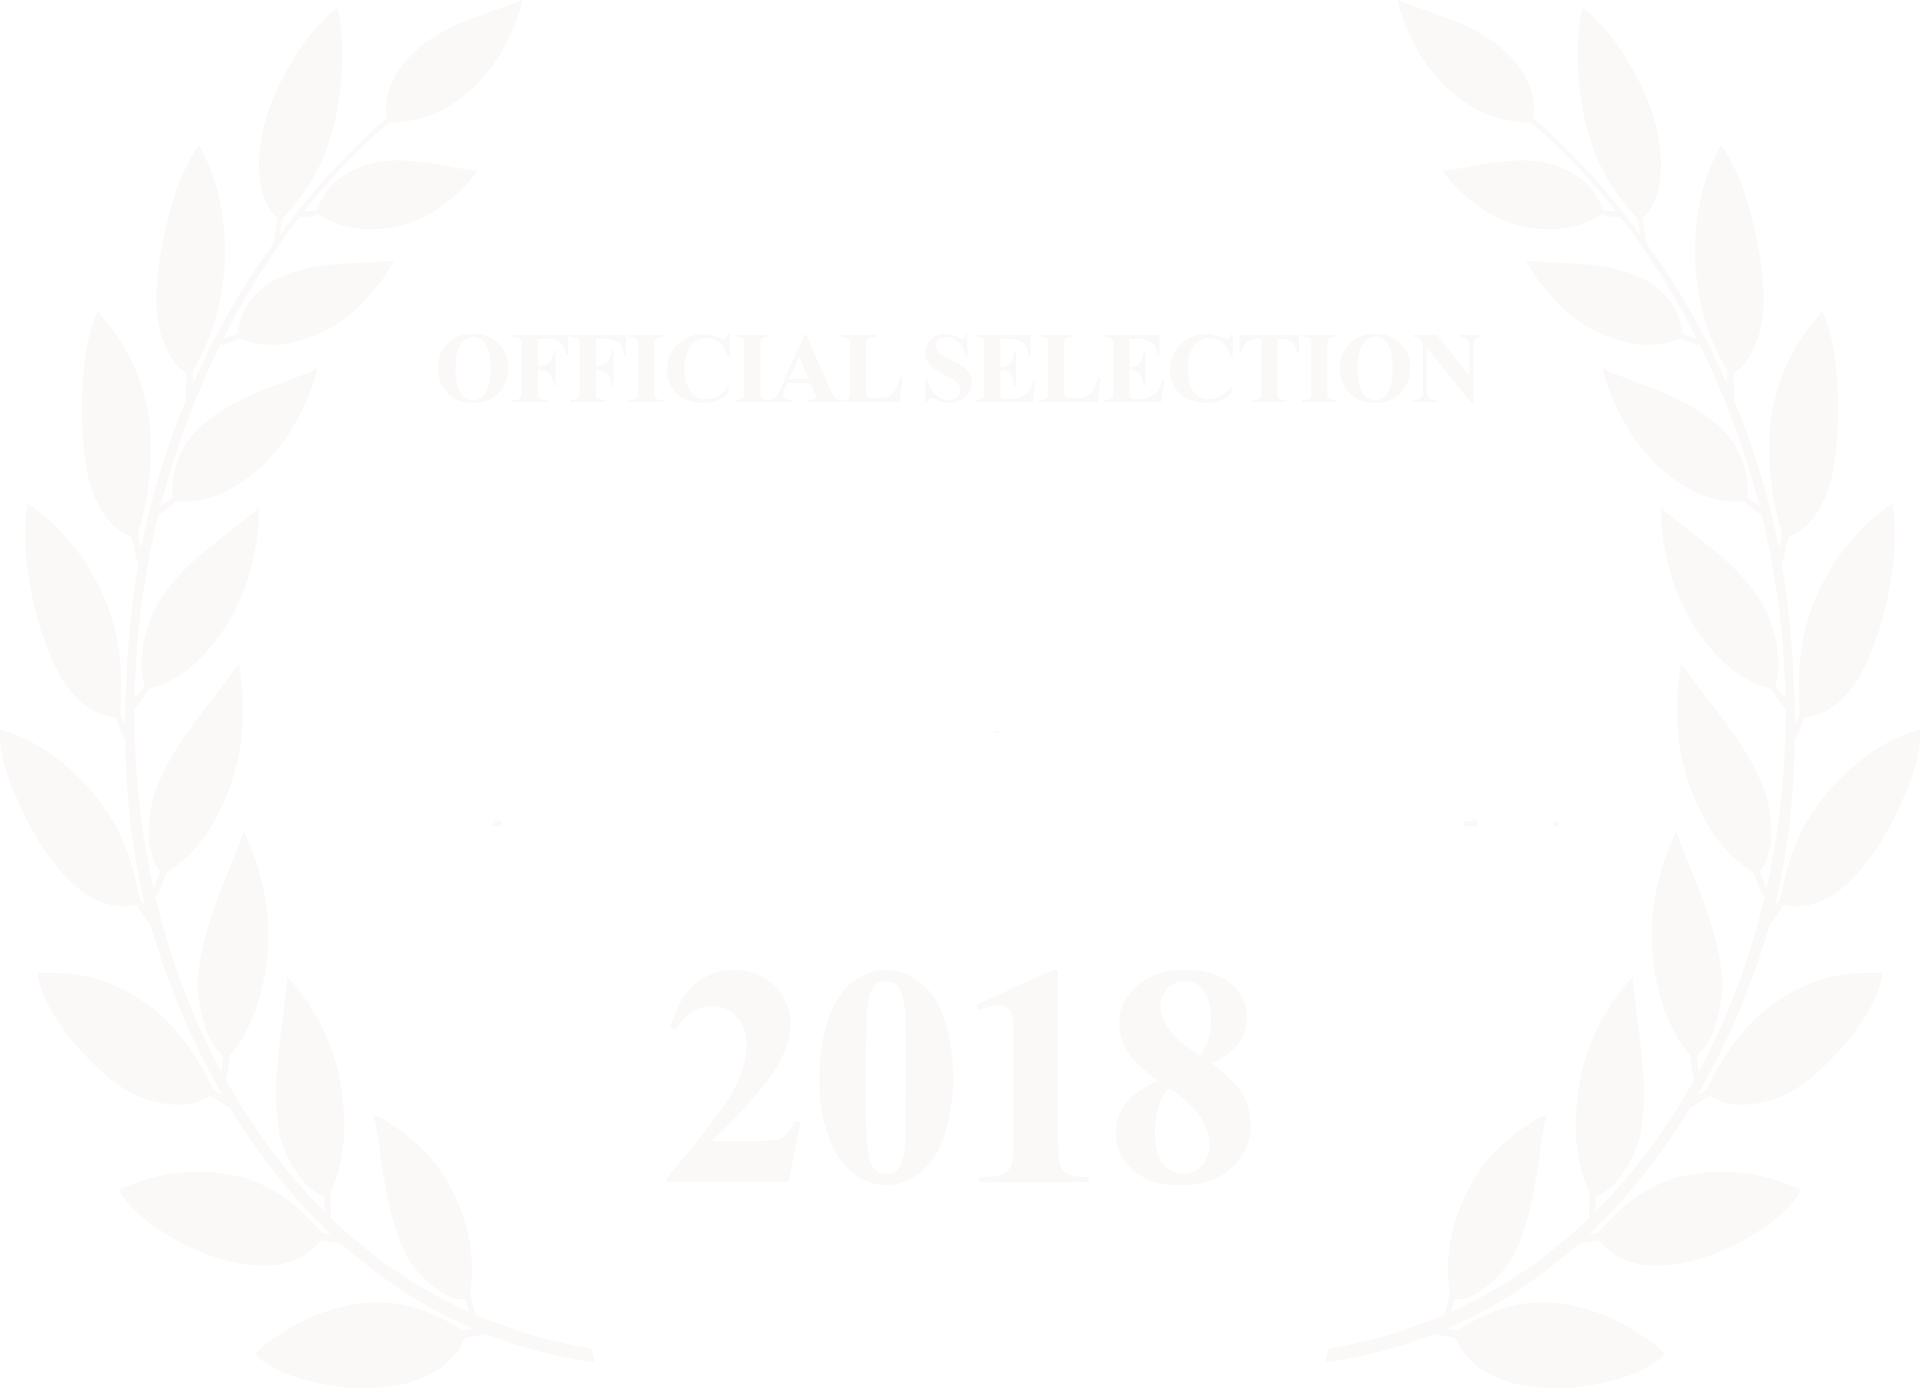 hollyshorts monthly screening 2018.png